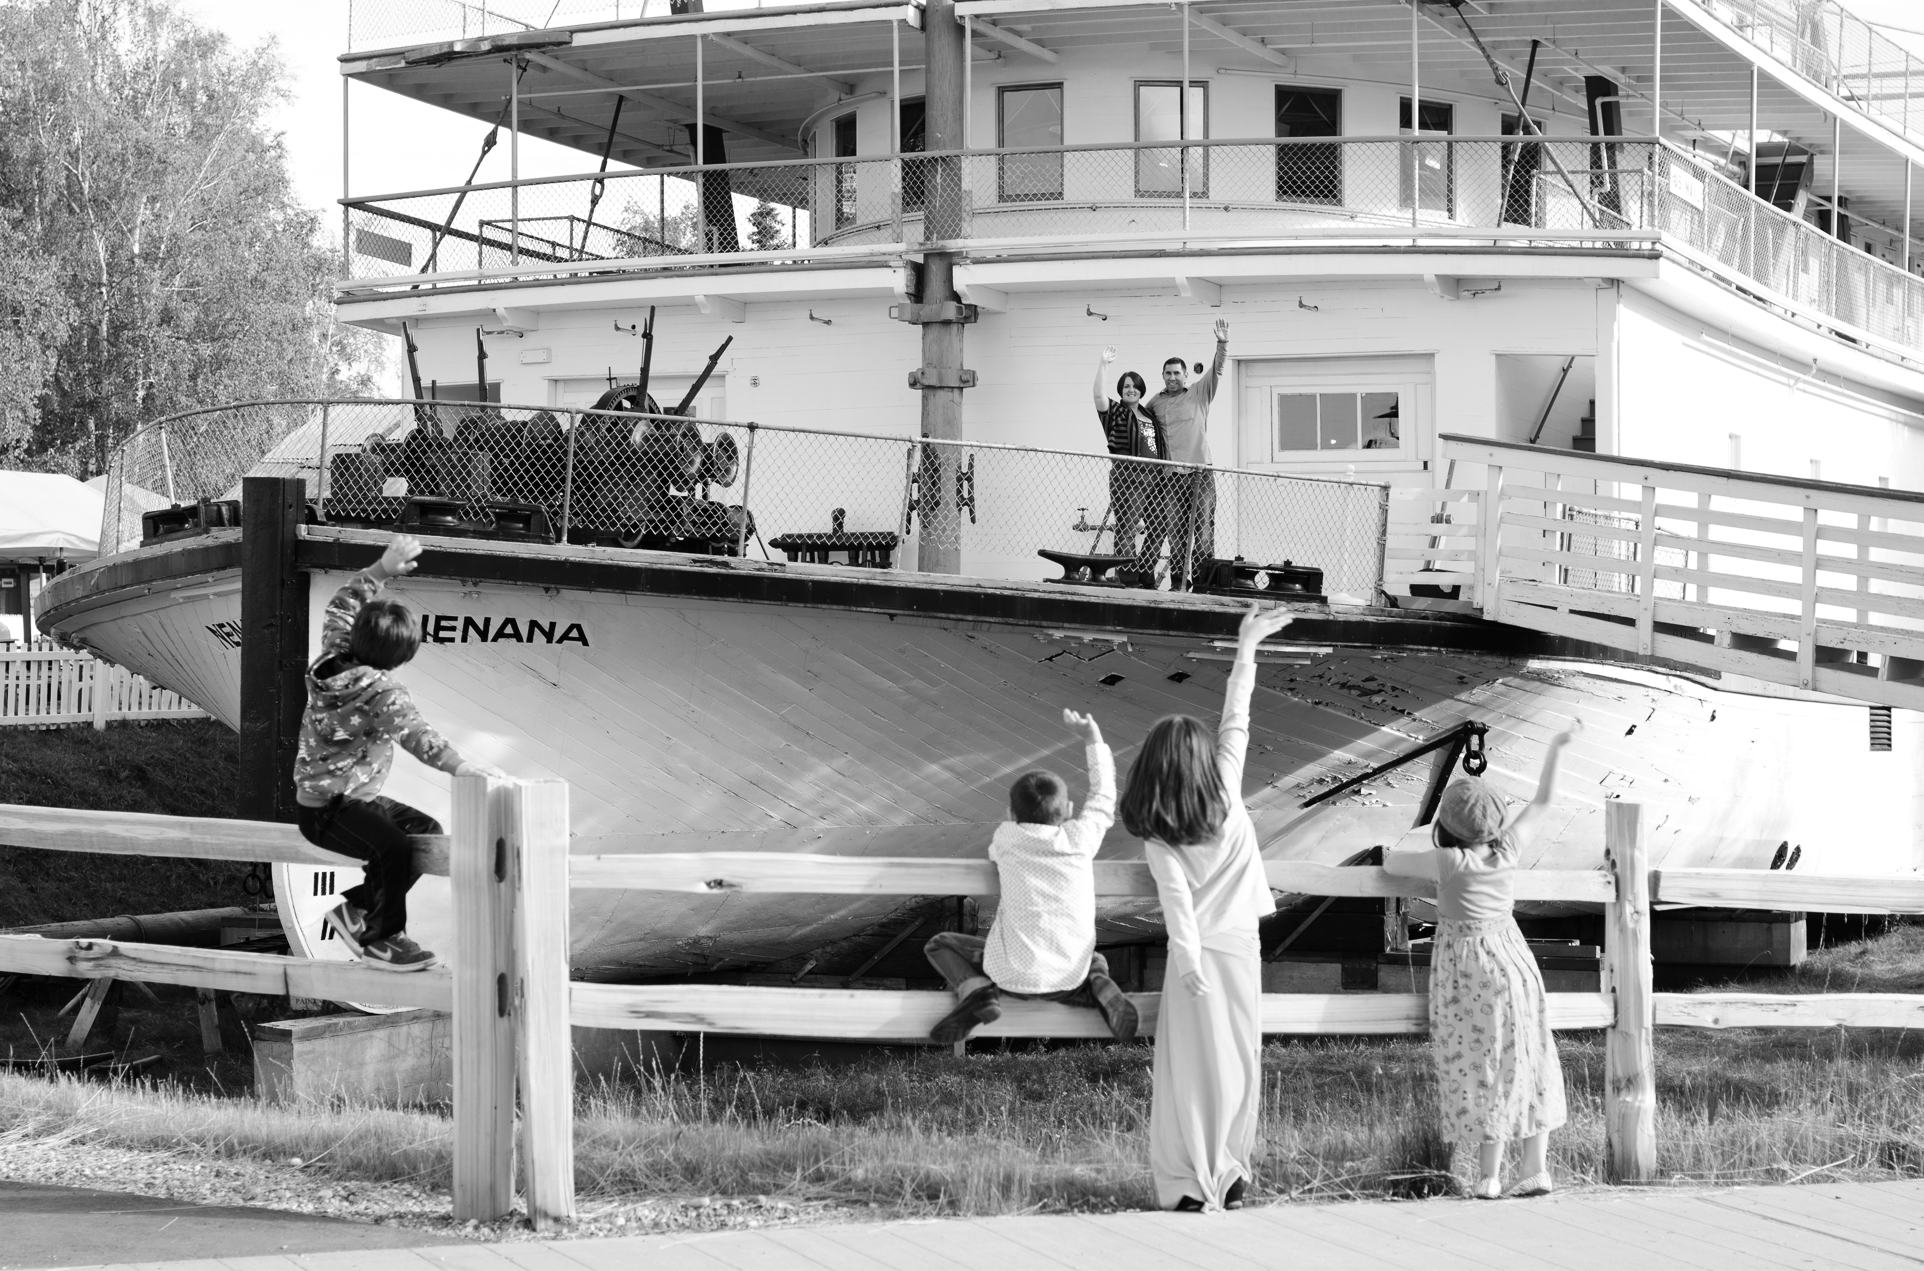 kids waving to parents on boat - pioneer park fairbanks ak